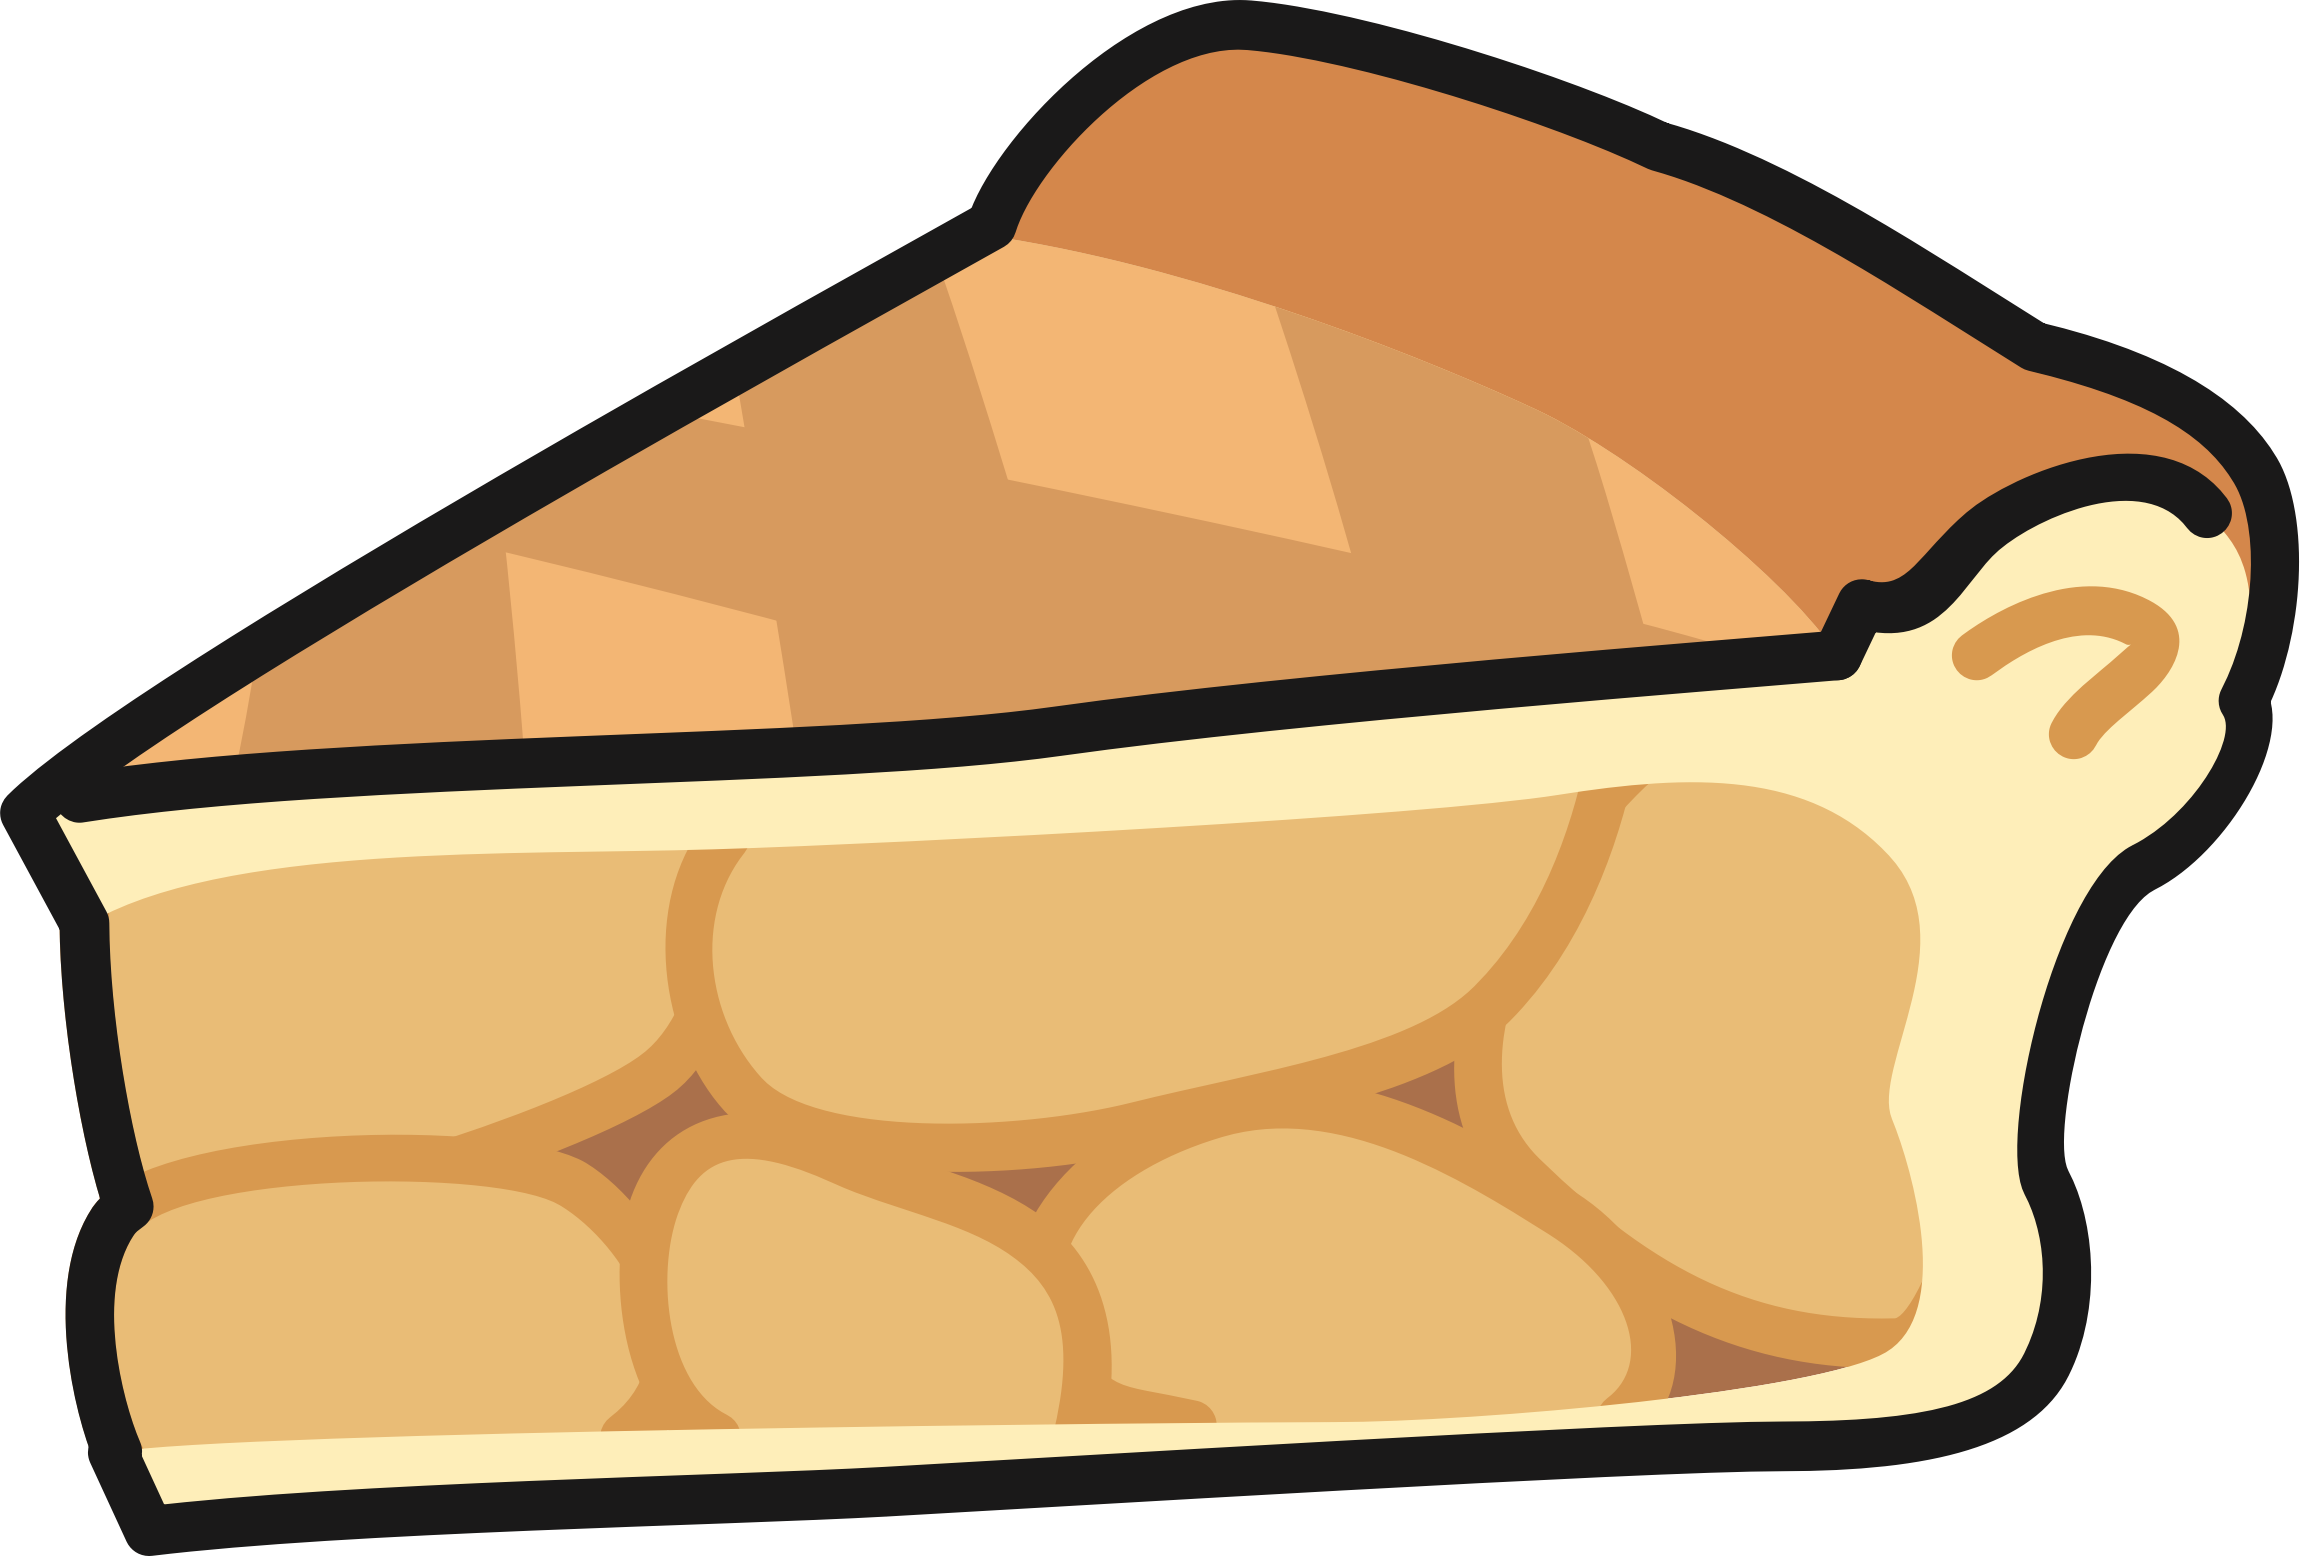 vector download Pies clipart free on. Ficcare clip.